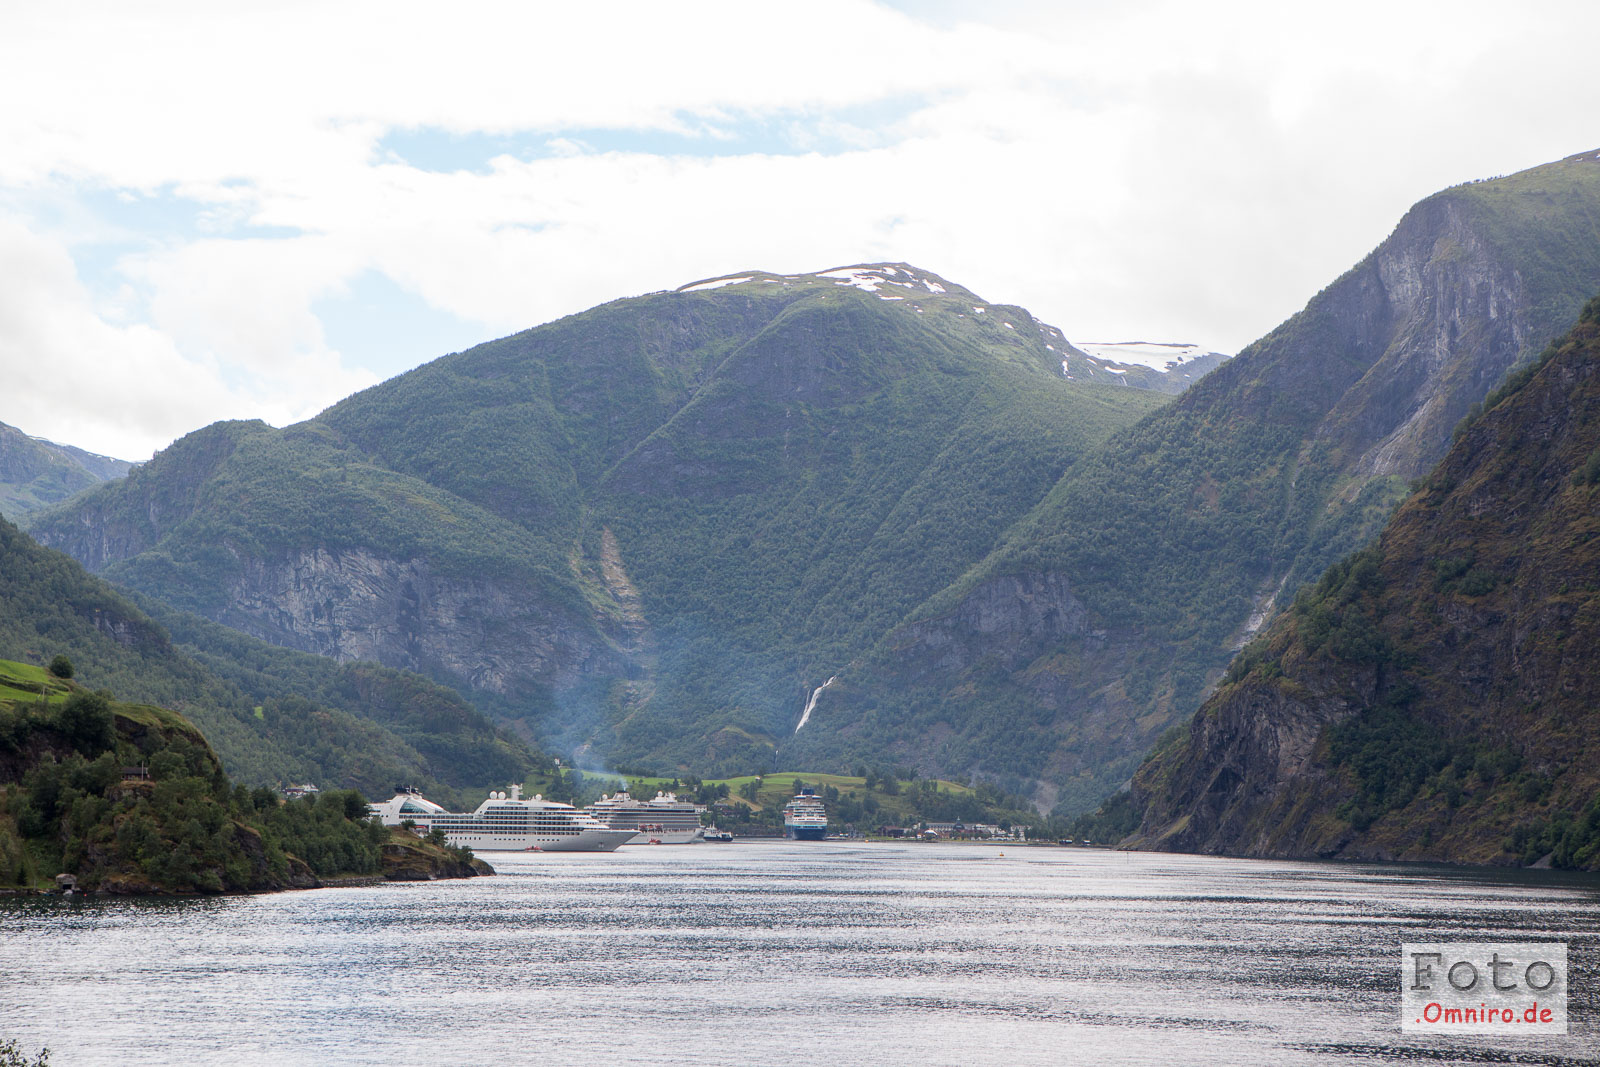 2016-07-26_13-55-03_Norge__MG_7453-1600